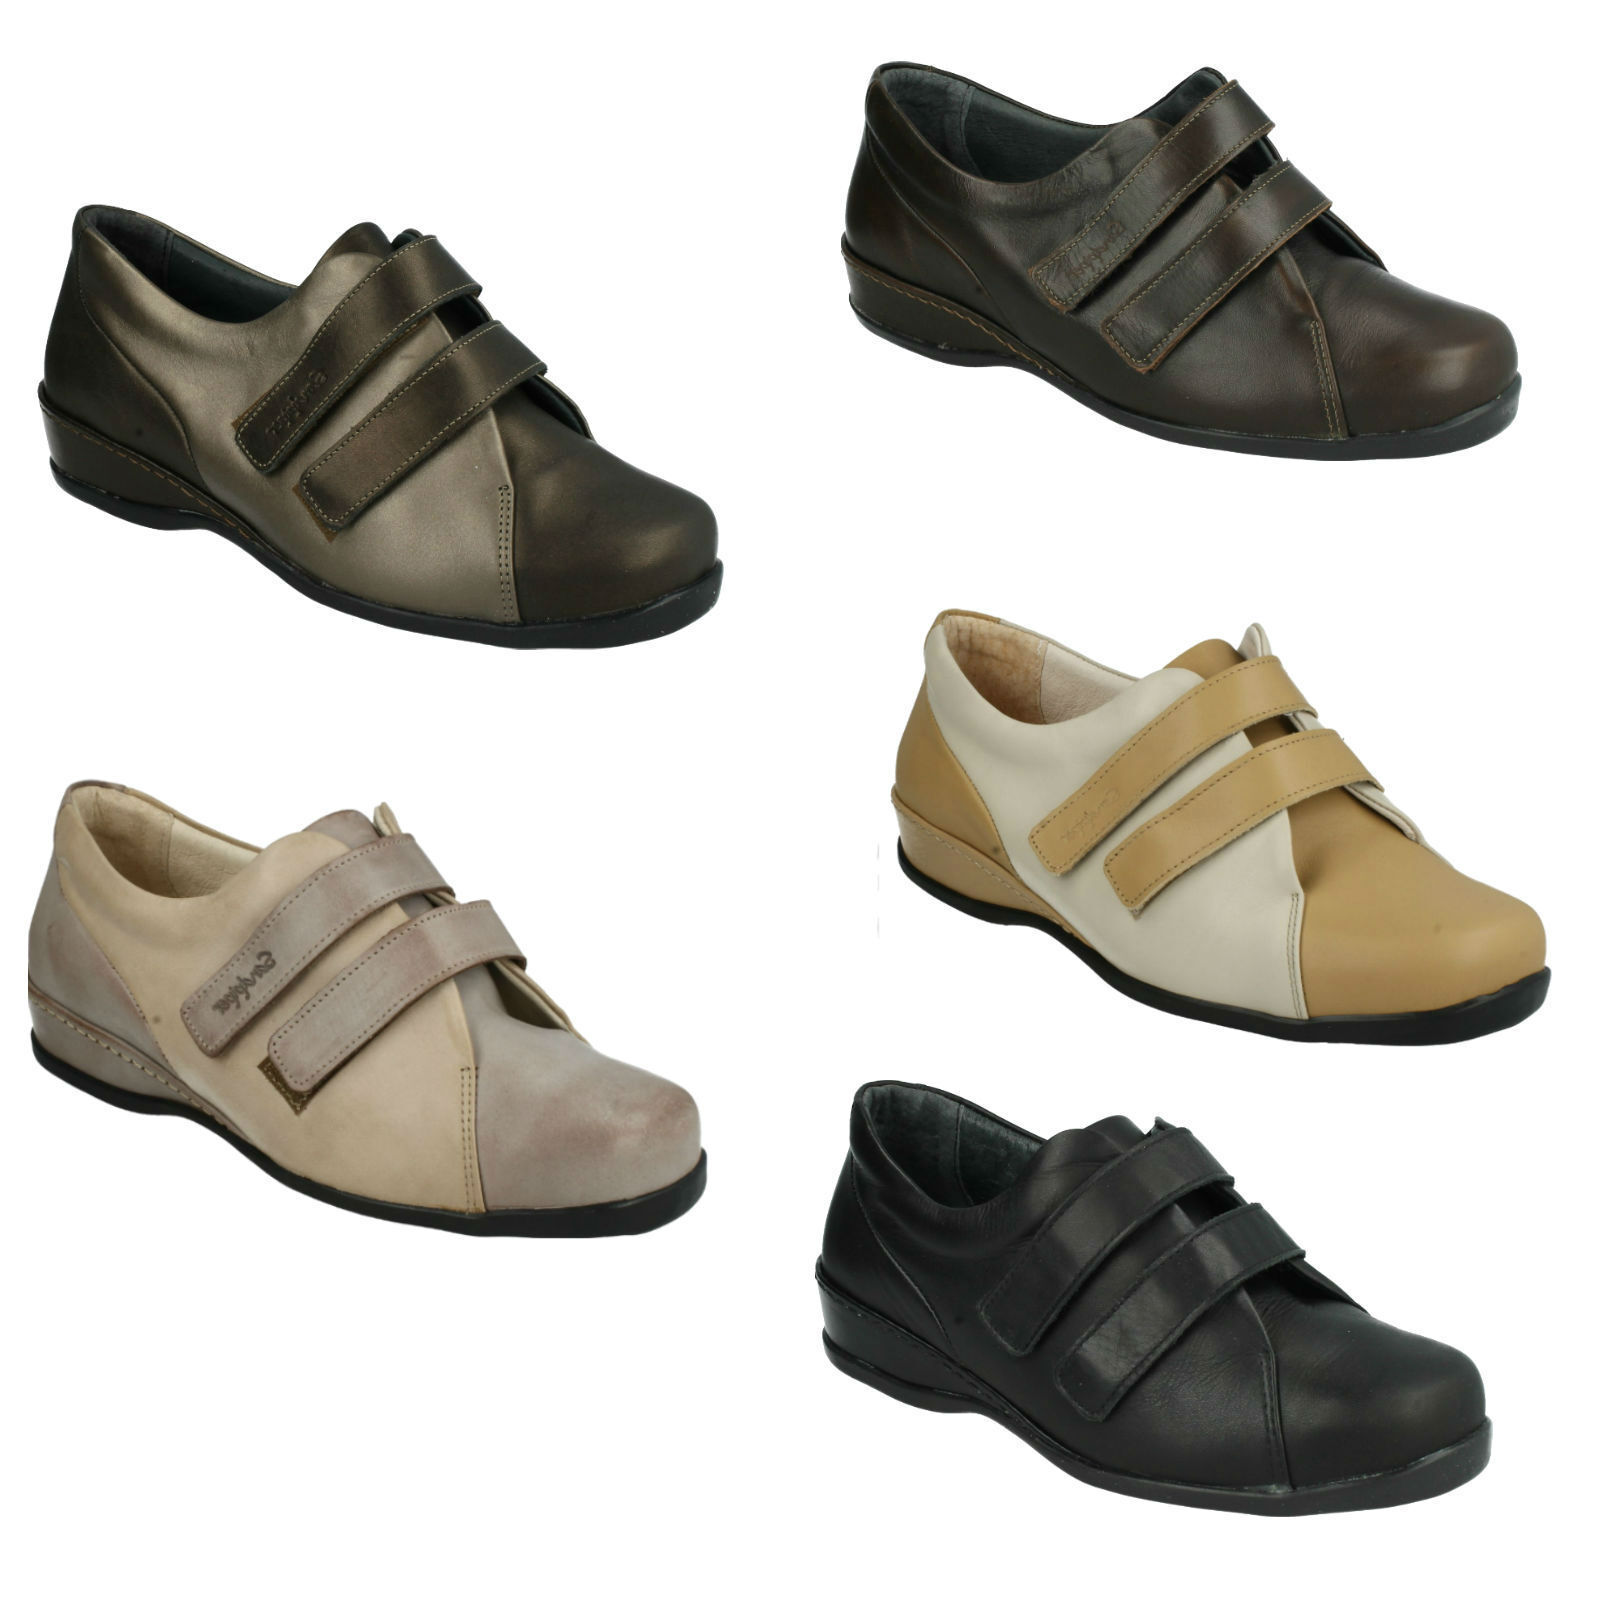 SANDPIPER WESTON LADIES CASUAL FLAT RIPTAPE FASTENING EVERYDAY CASUAL SHOES